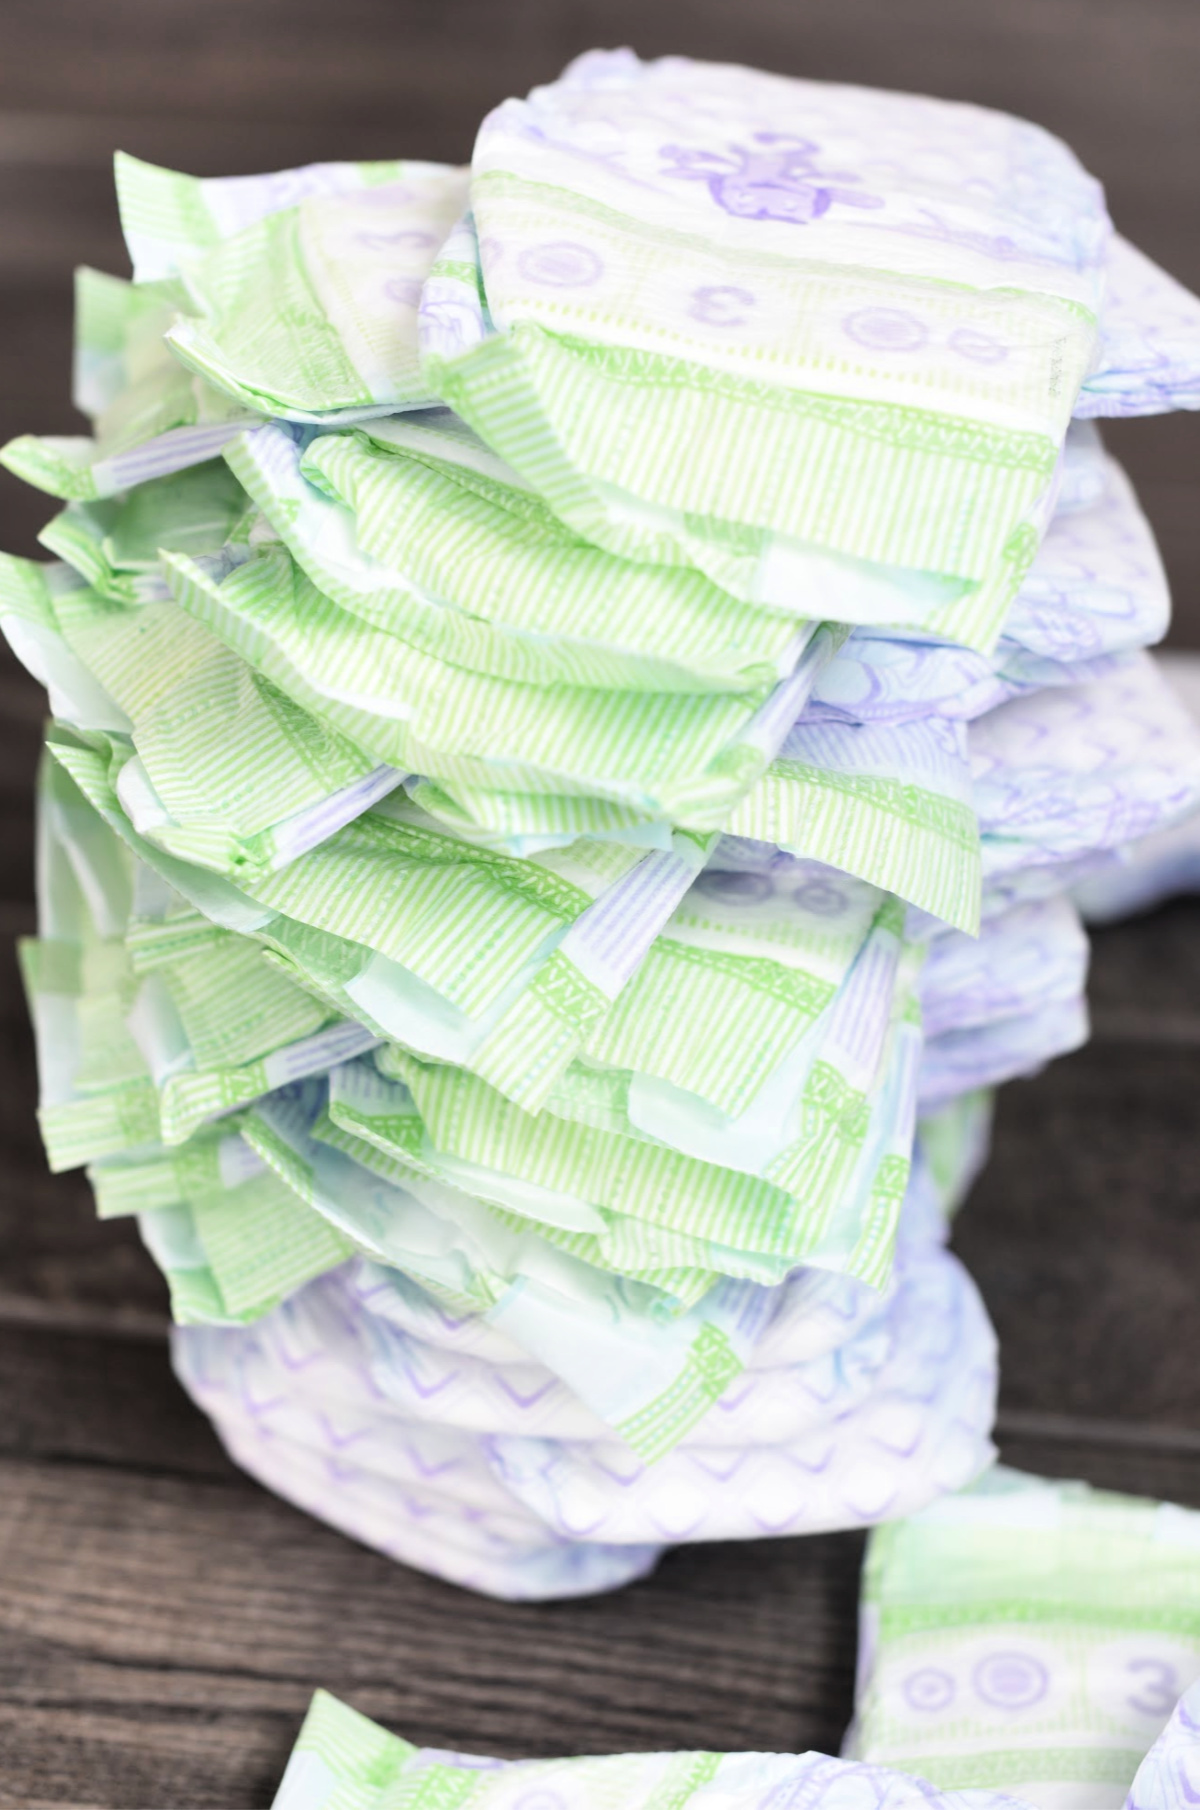 Diaper Stacking Minute to Win It